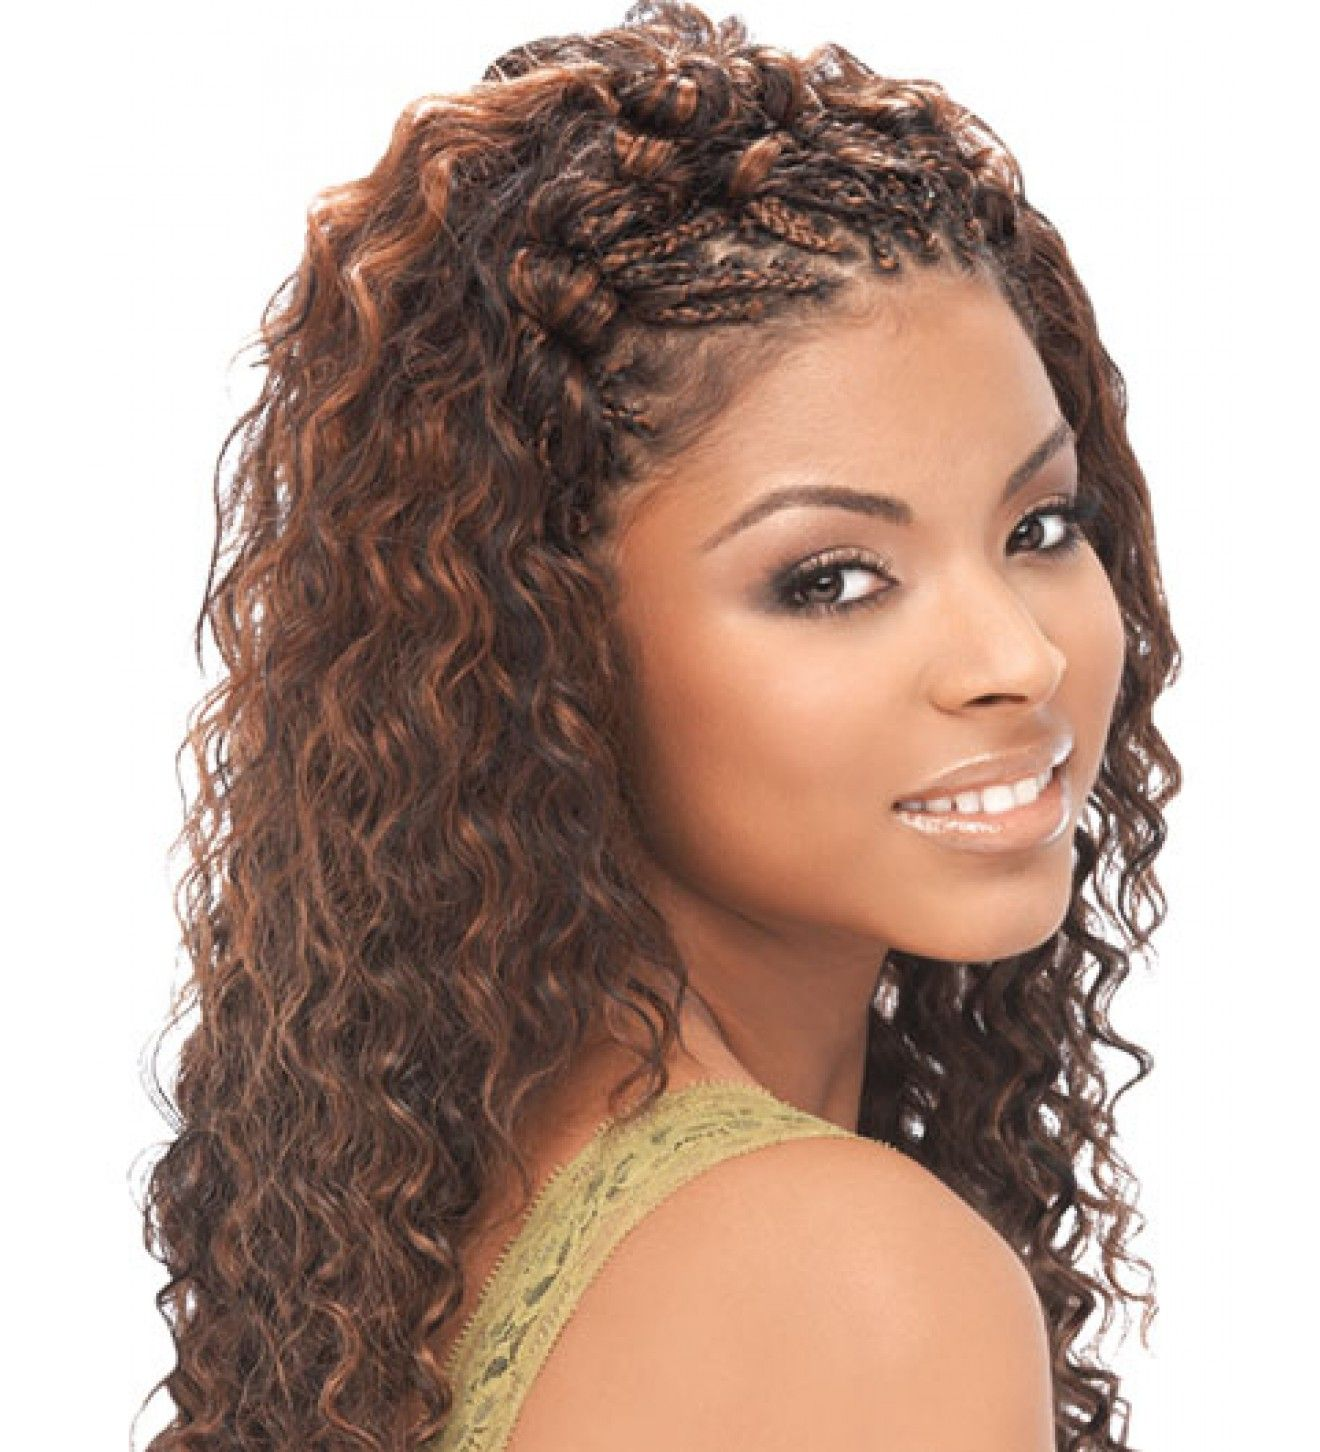 Blonde Box Braids #BoxBraids | Blonde braids, Braided ... |Using Human Hair Box Braids